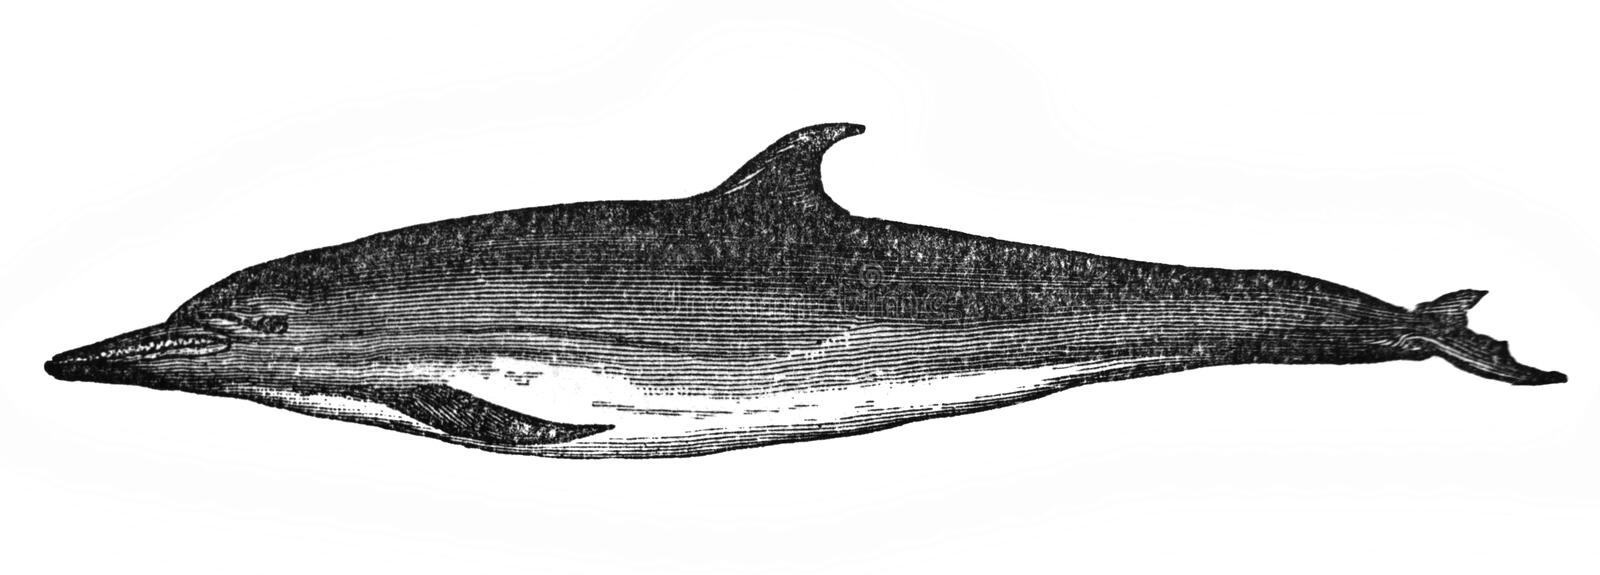 Illustration of the common dolphin of the Mediterranean Delphinus delphis in the old book The Encyclopaedia Britannica, vol. 15,. By C. Blake, 1883, Edinburgh royalty free illustration